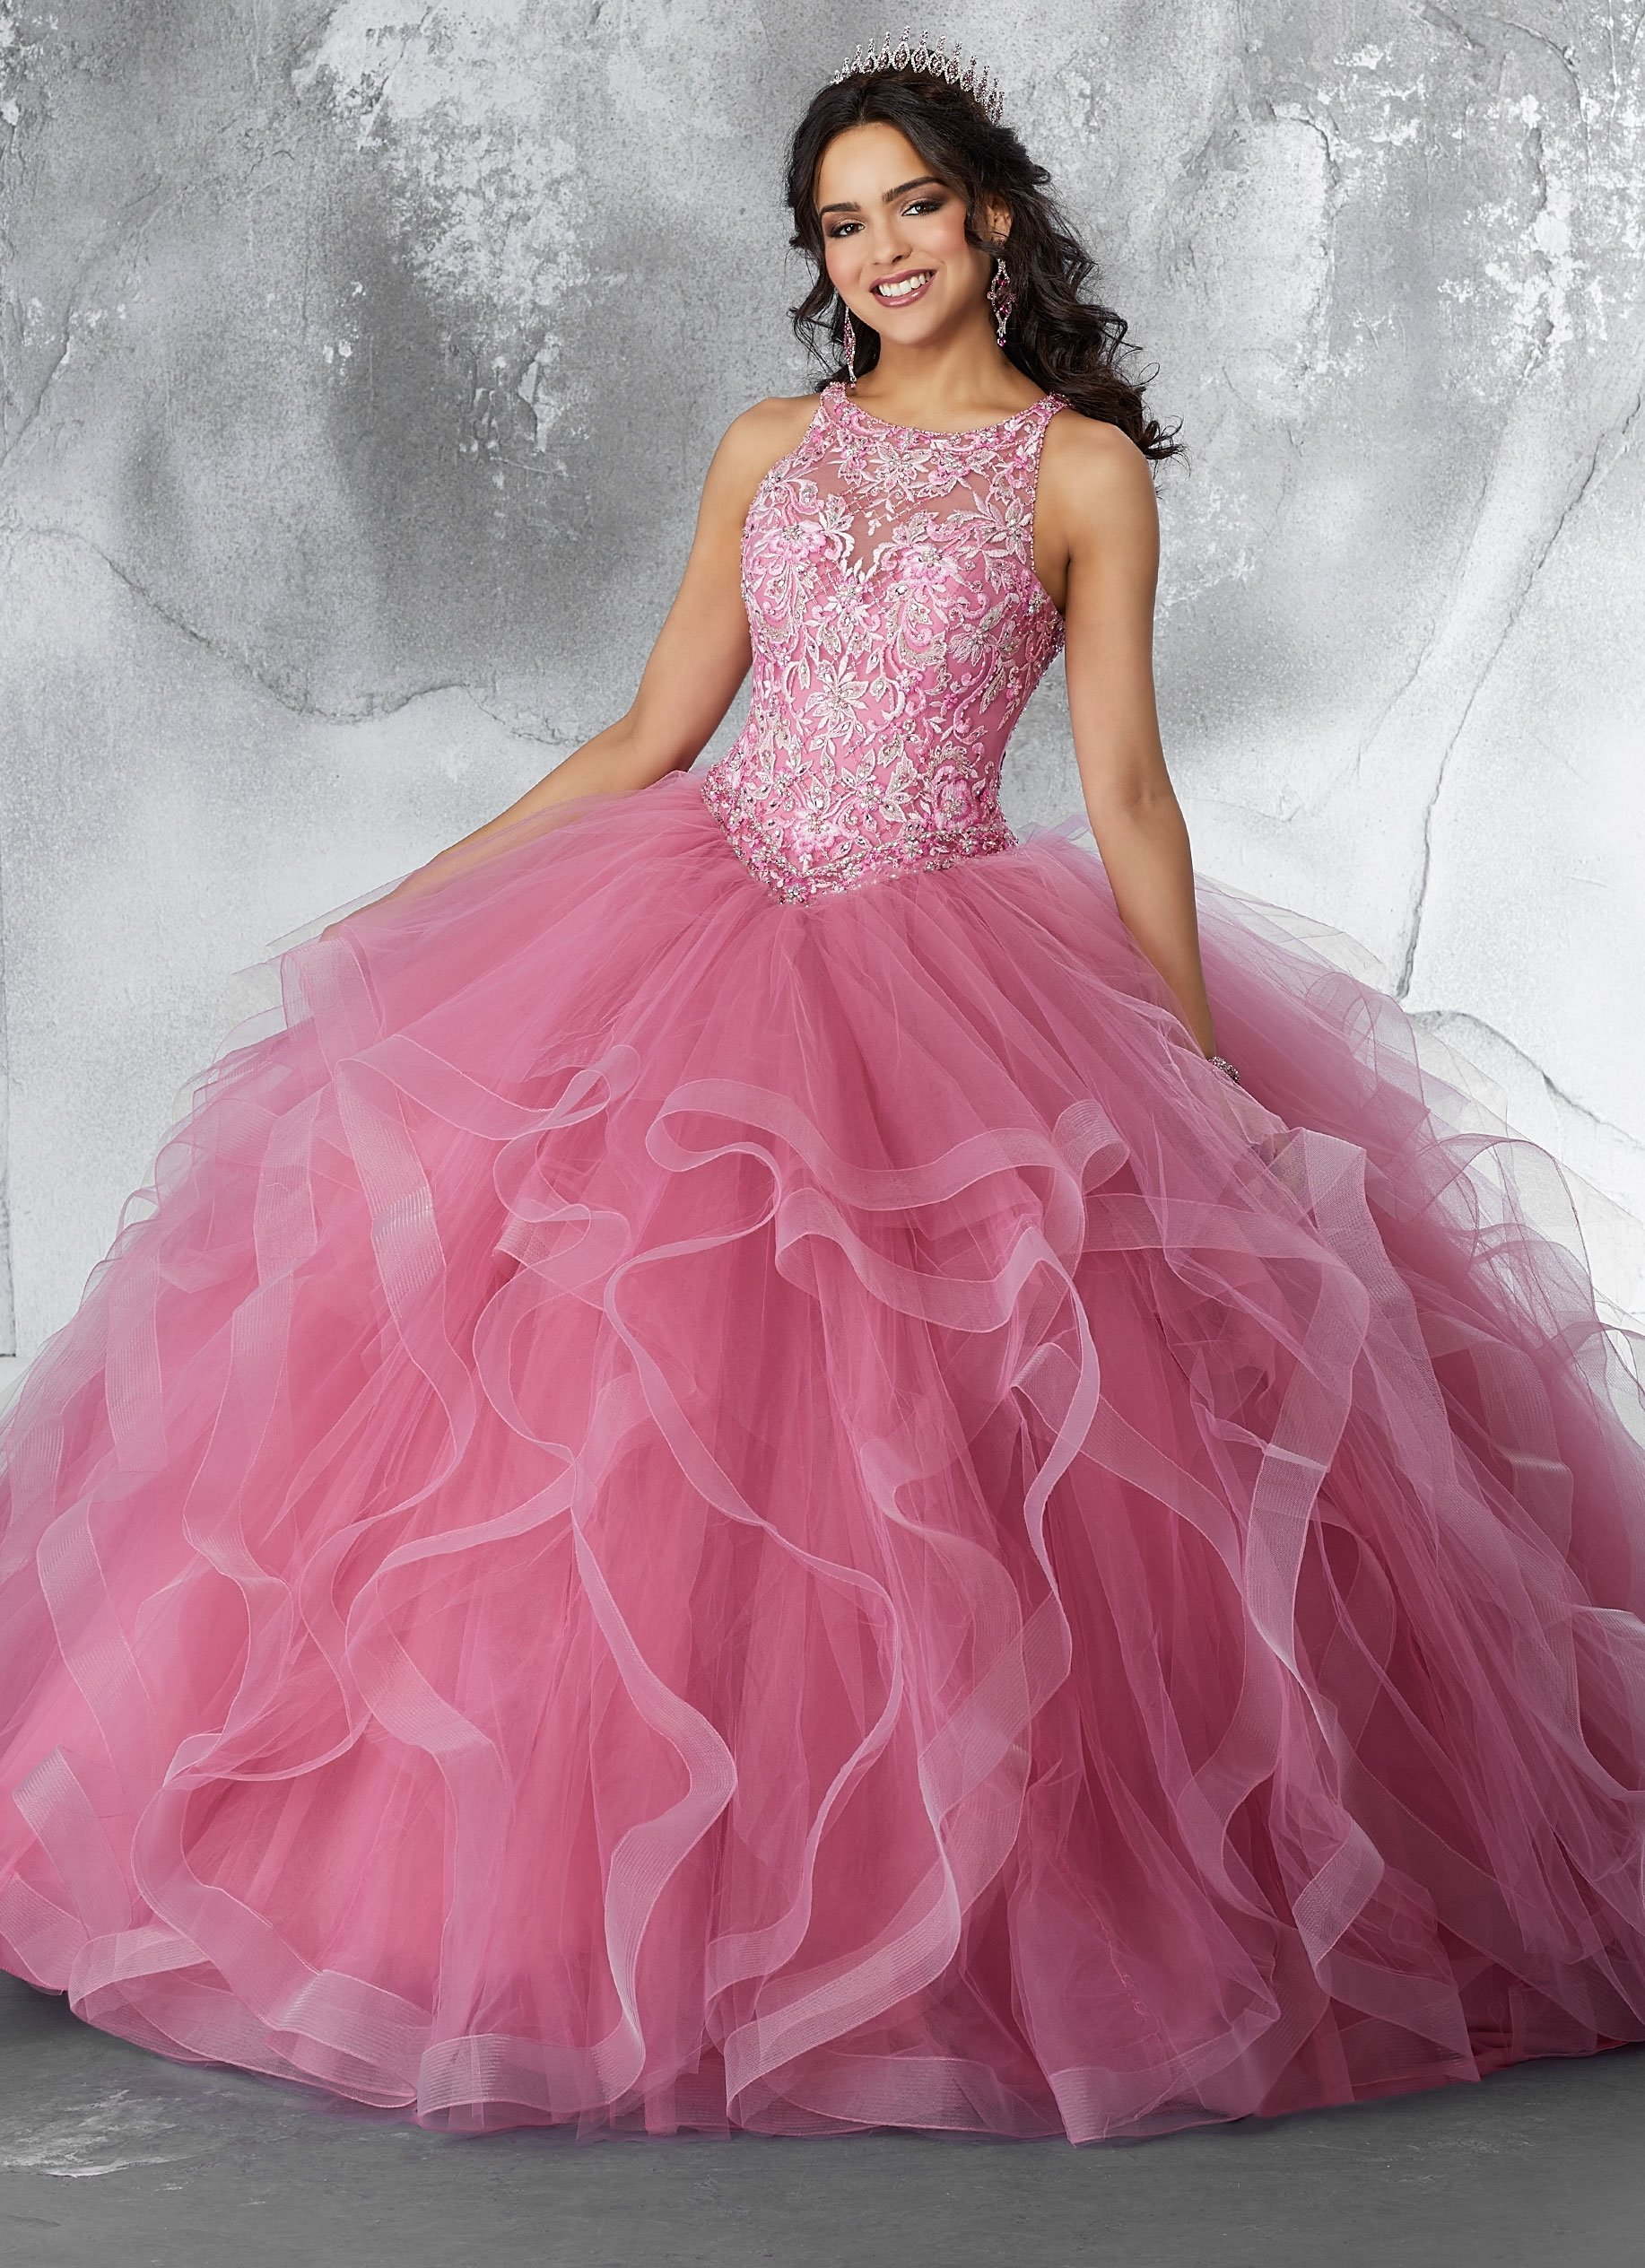 a4cd45c0175 Sleeveless Ruffled Quinceanera Dress by Mori Lee Vizcaya 89194 – ABC Fashion